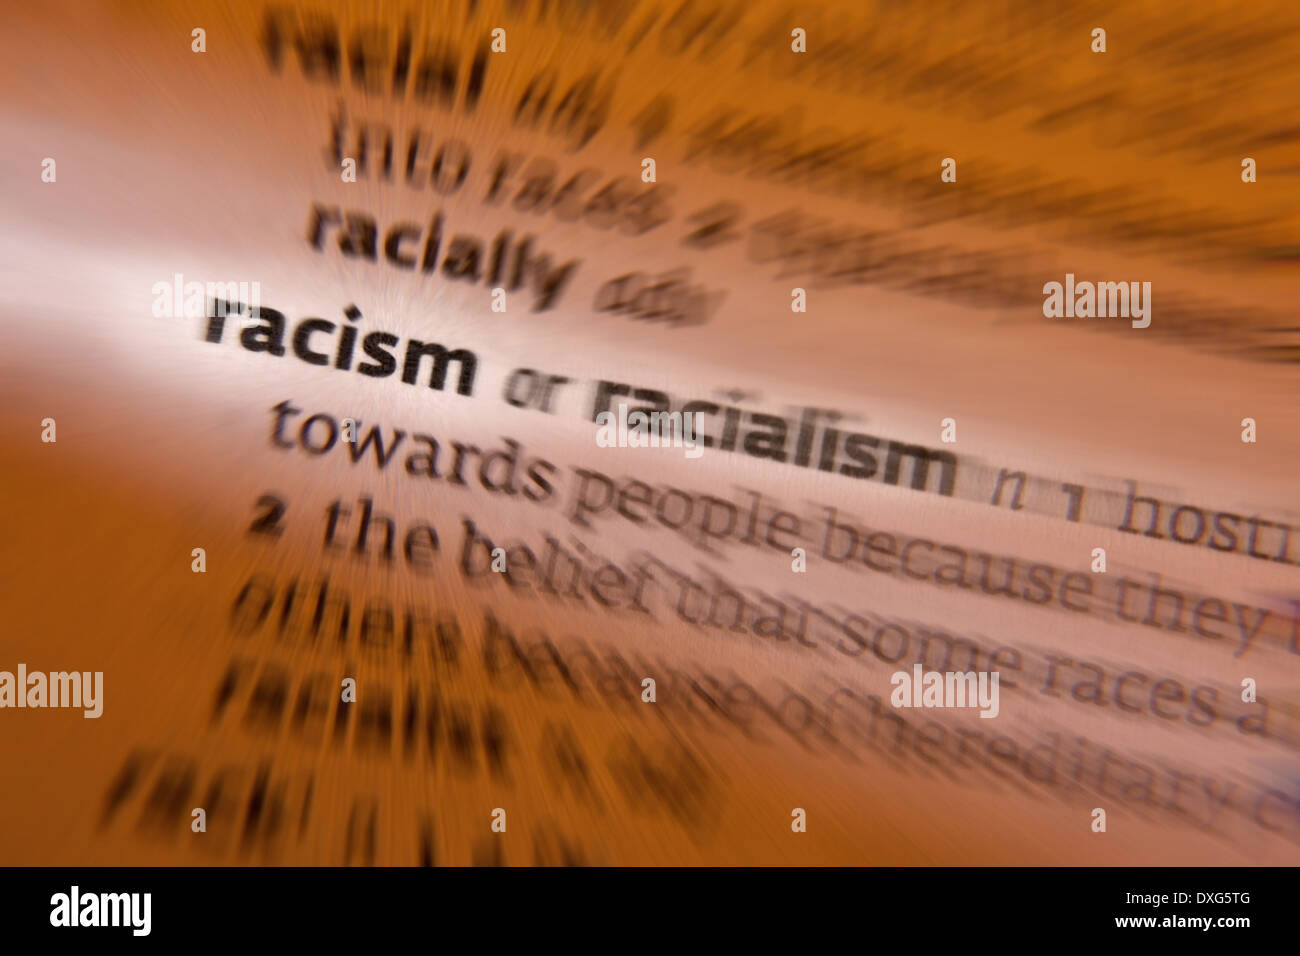 Racism - prejudice, discrimination, or antagonism directed against someone of a different race. - Stock Image